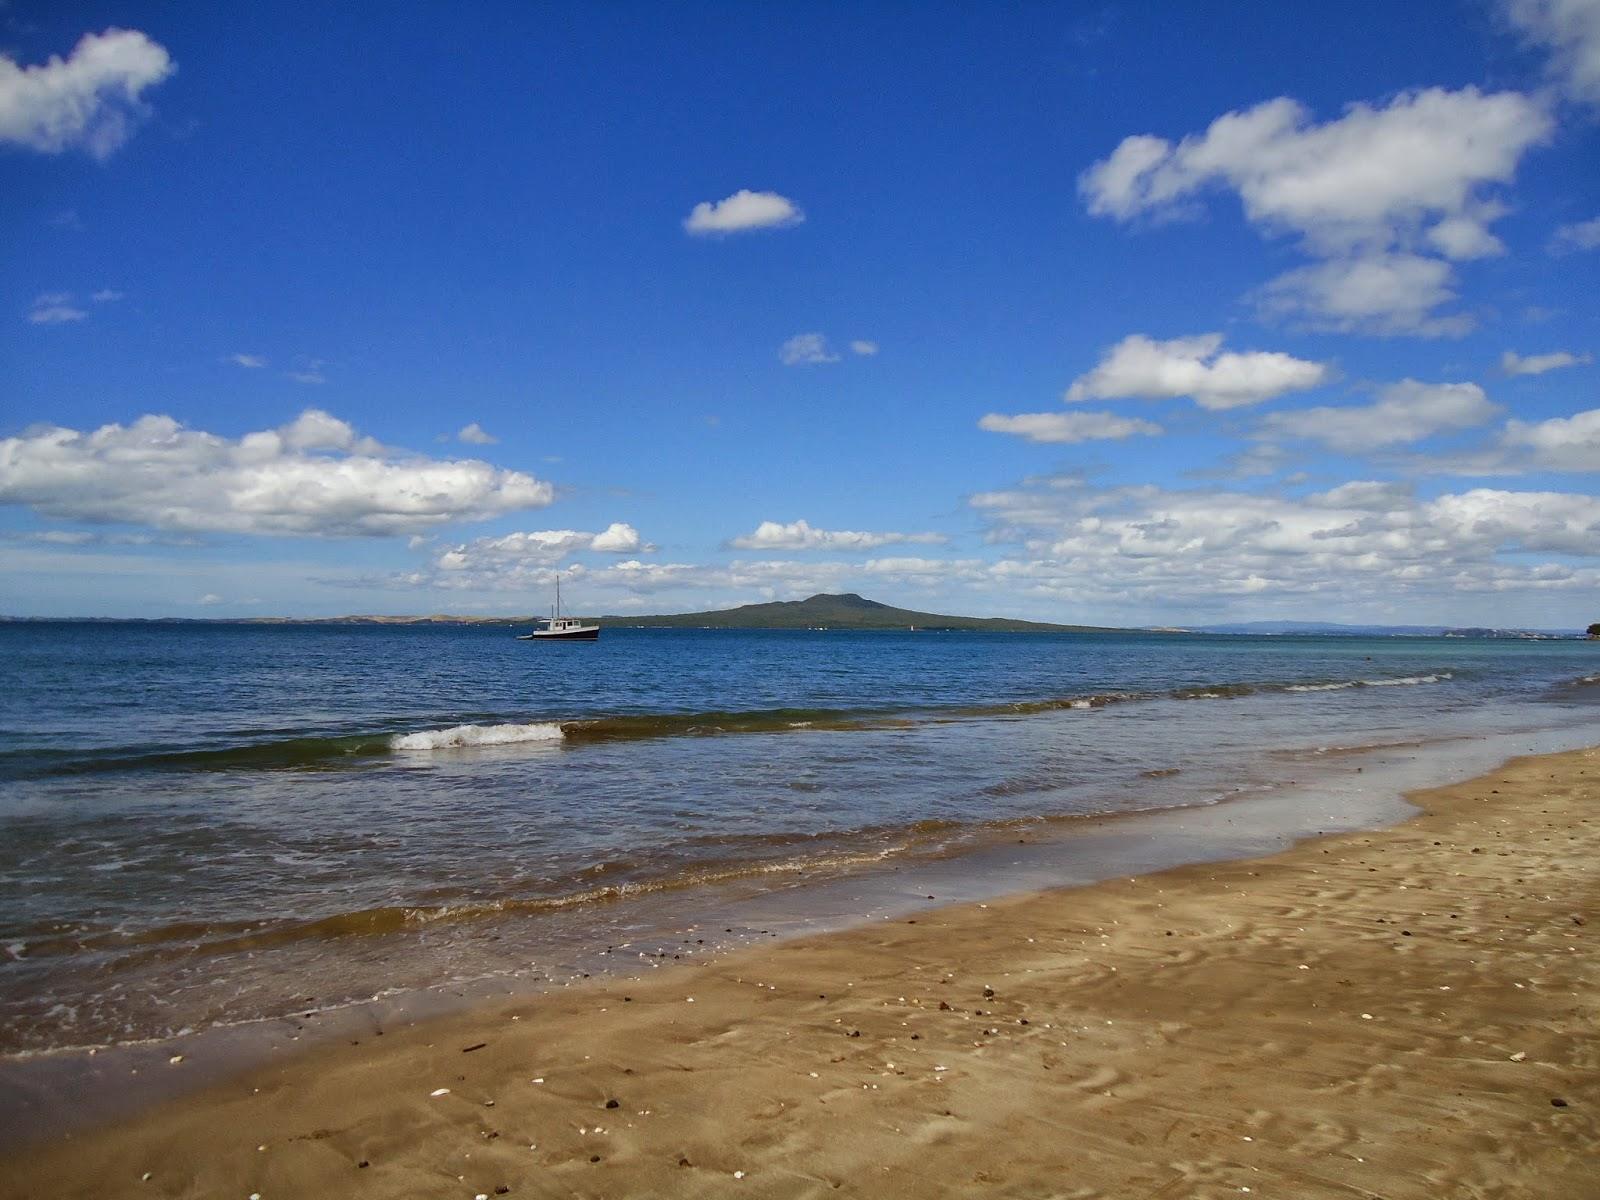 Rangitoto island seen from Milford Beach, Auckland, New Zealand